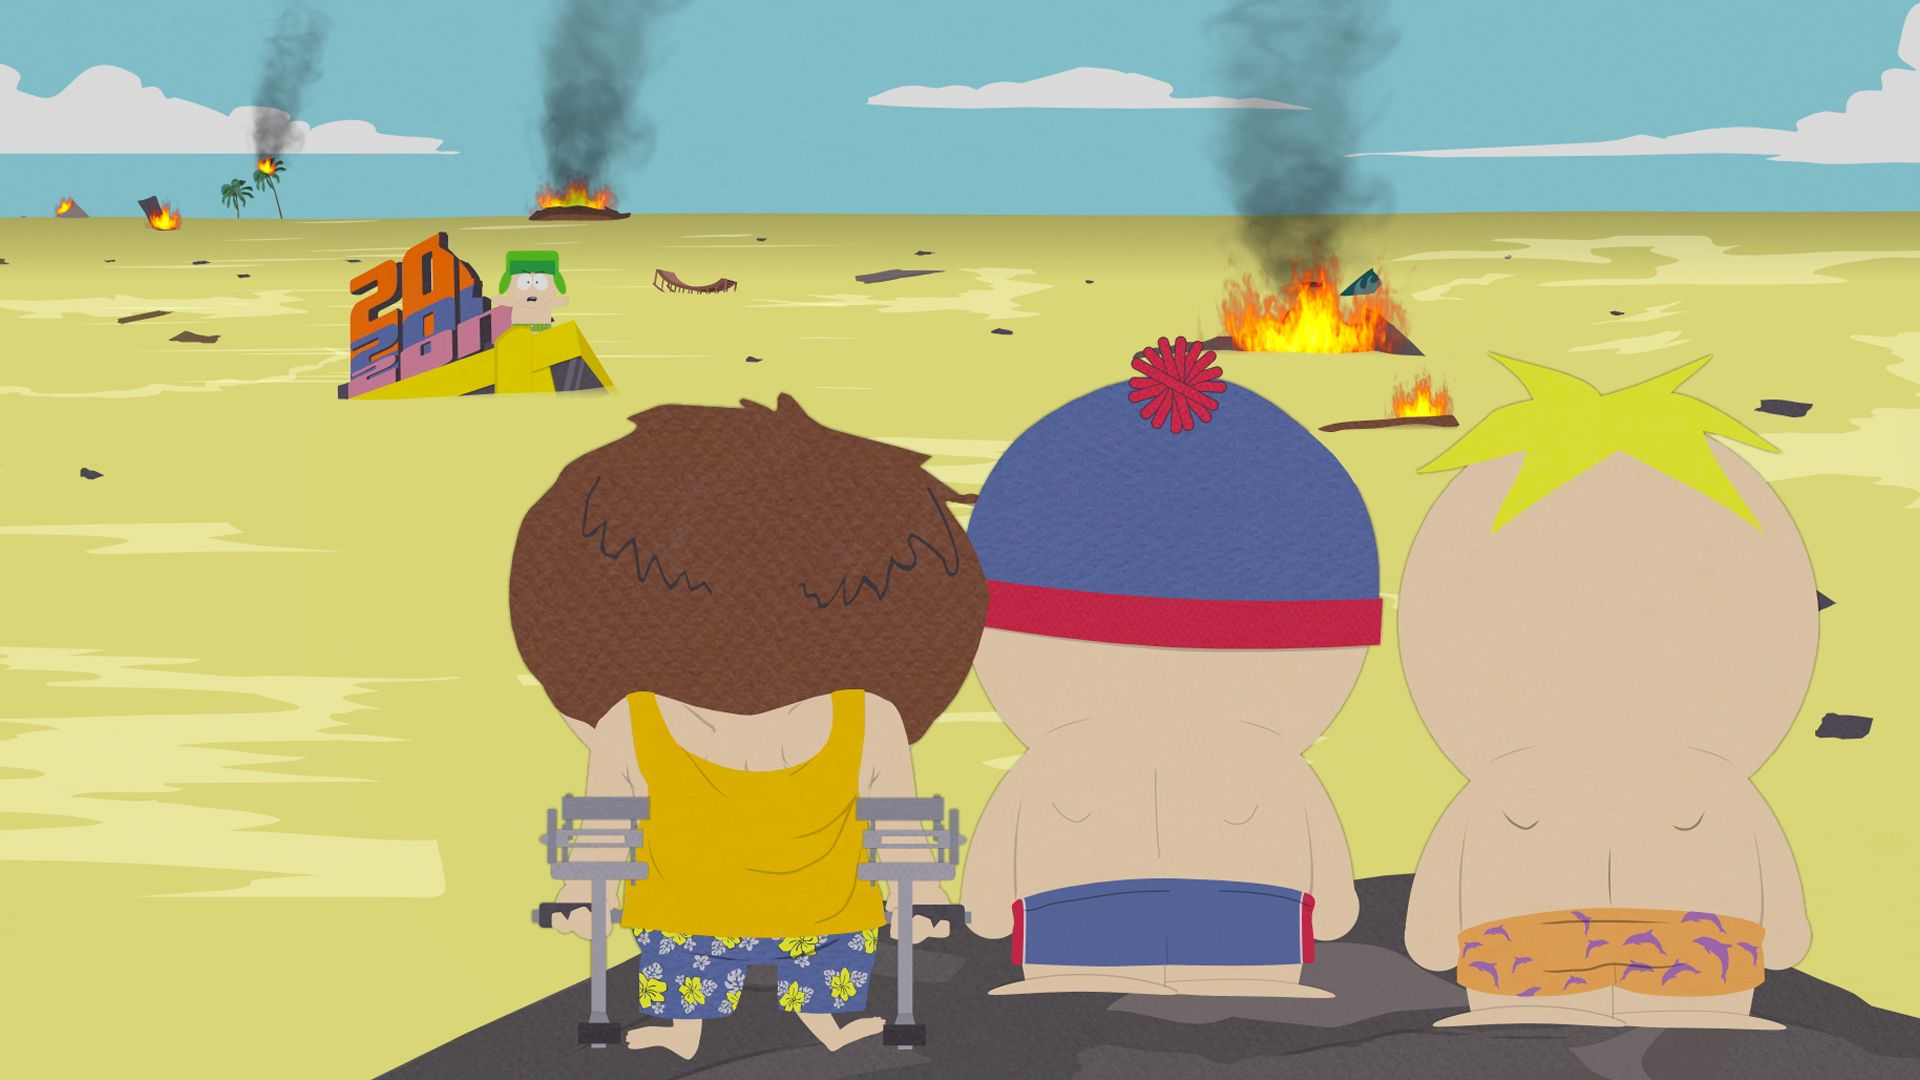 South park sexual healing handkerchief picture